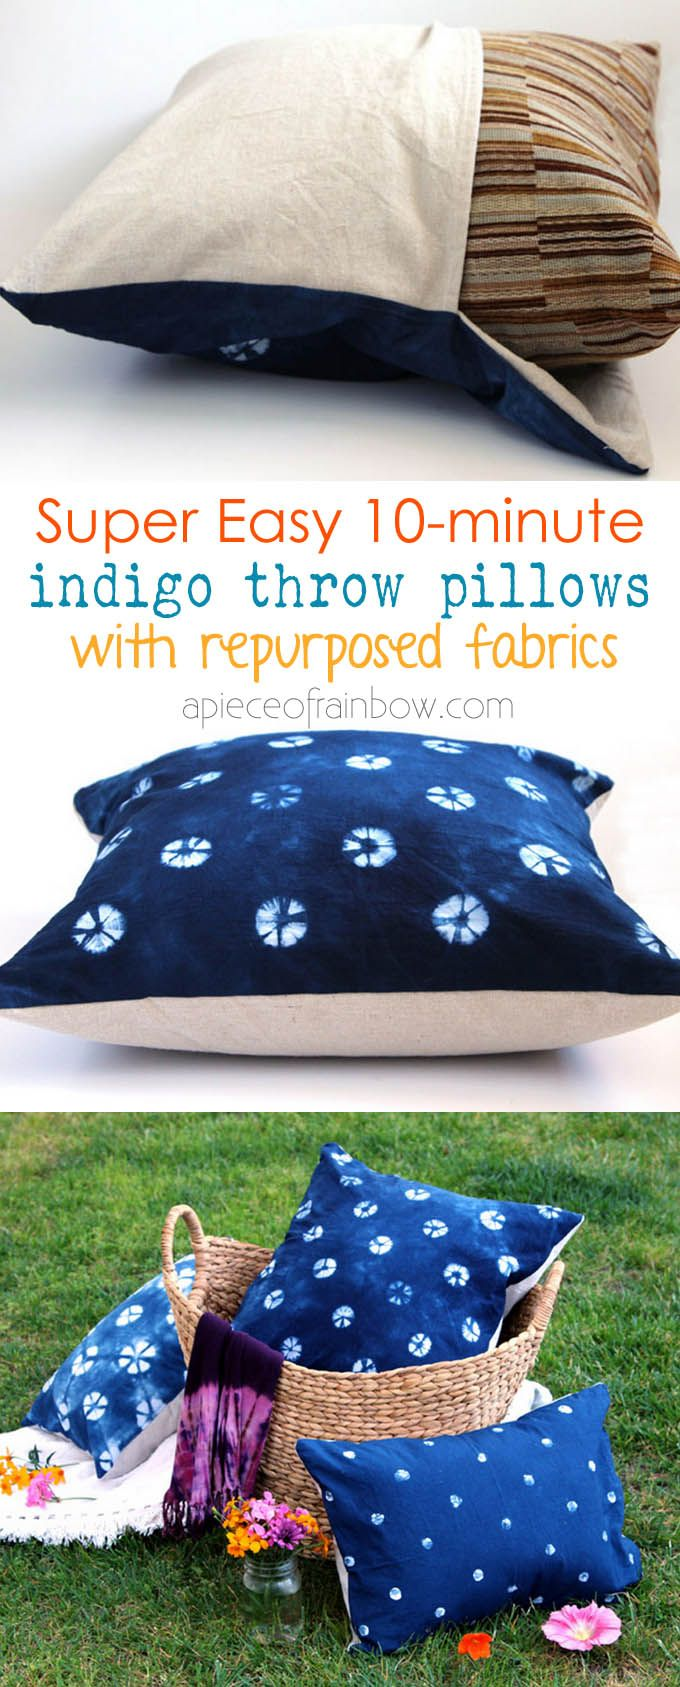 Make envelope throw pillows in less than 10 minutes using re-purposed fabrics such as canvas drop cloth : super easy, no sewing skill required! - A Piece Of Rainbow